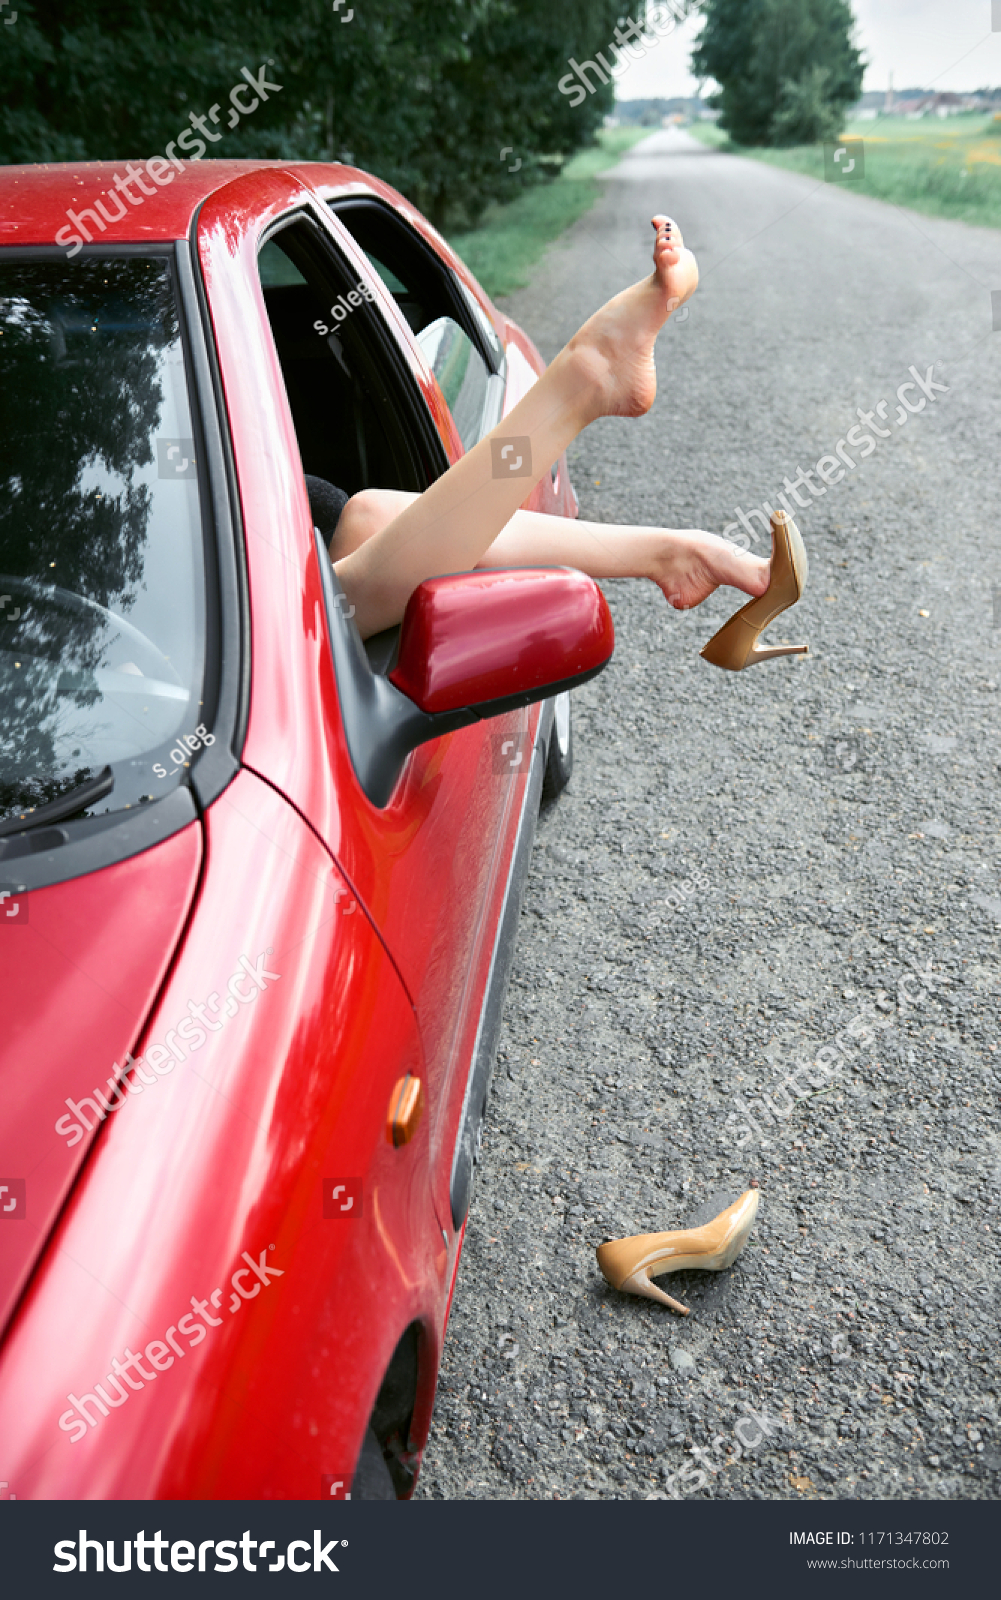 f9a8ddbce0b Young Woman Driver Resting Red Car Stock Photo (Edit Now) 1171347802 ...